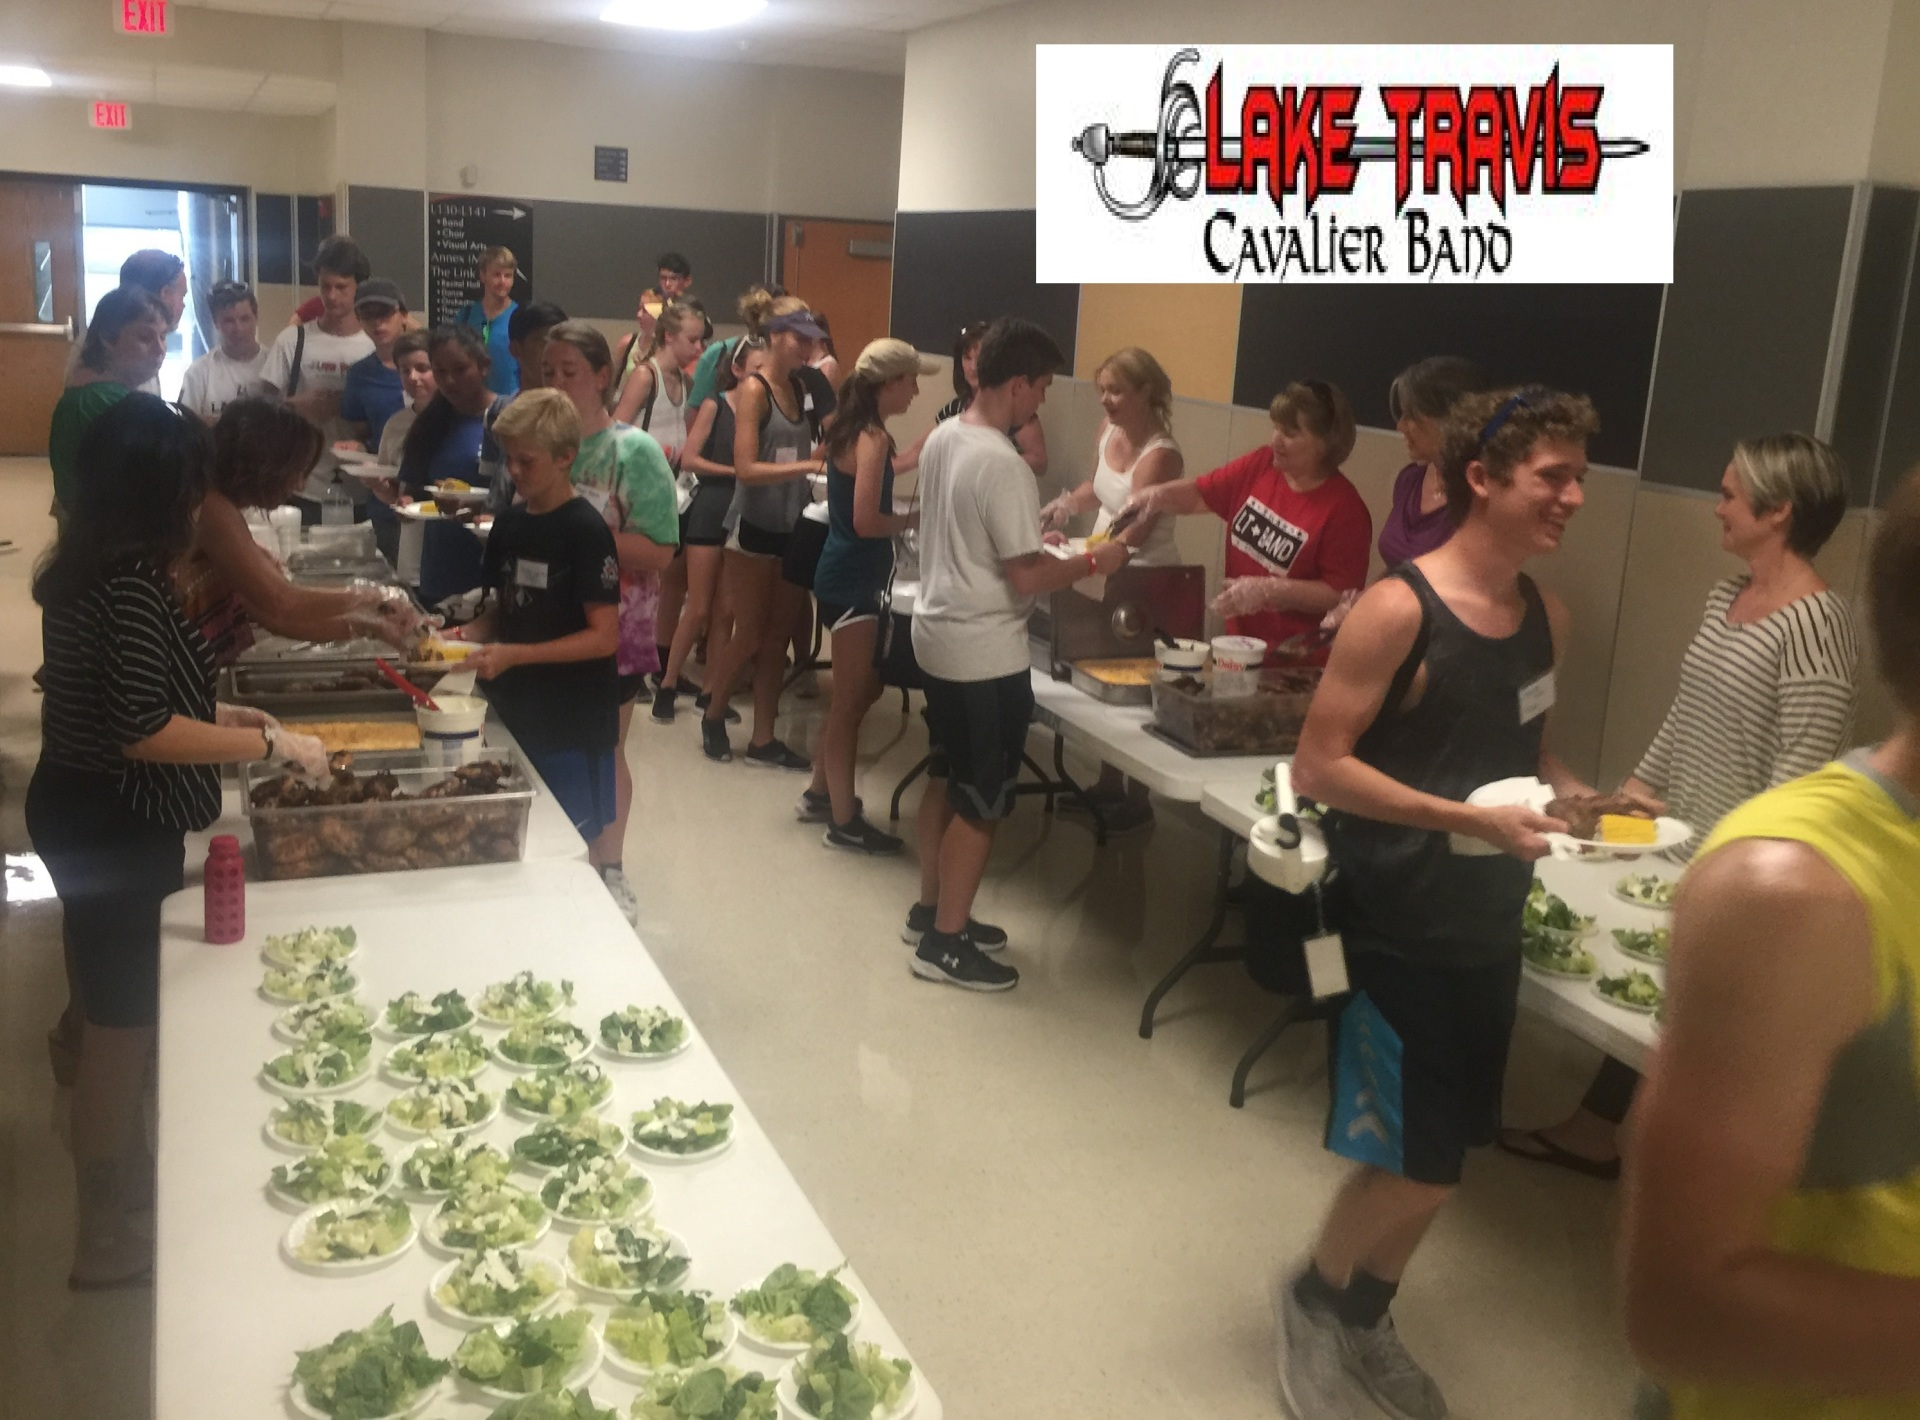 Large groups catering